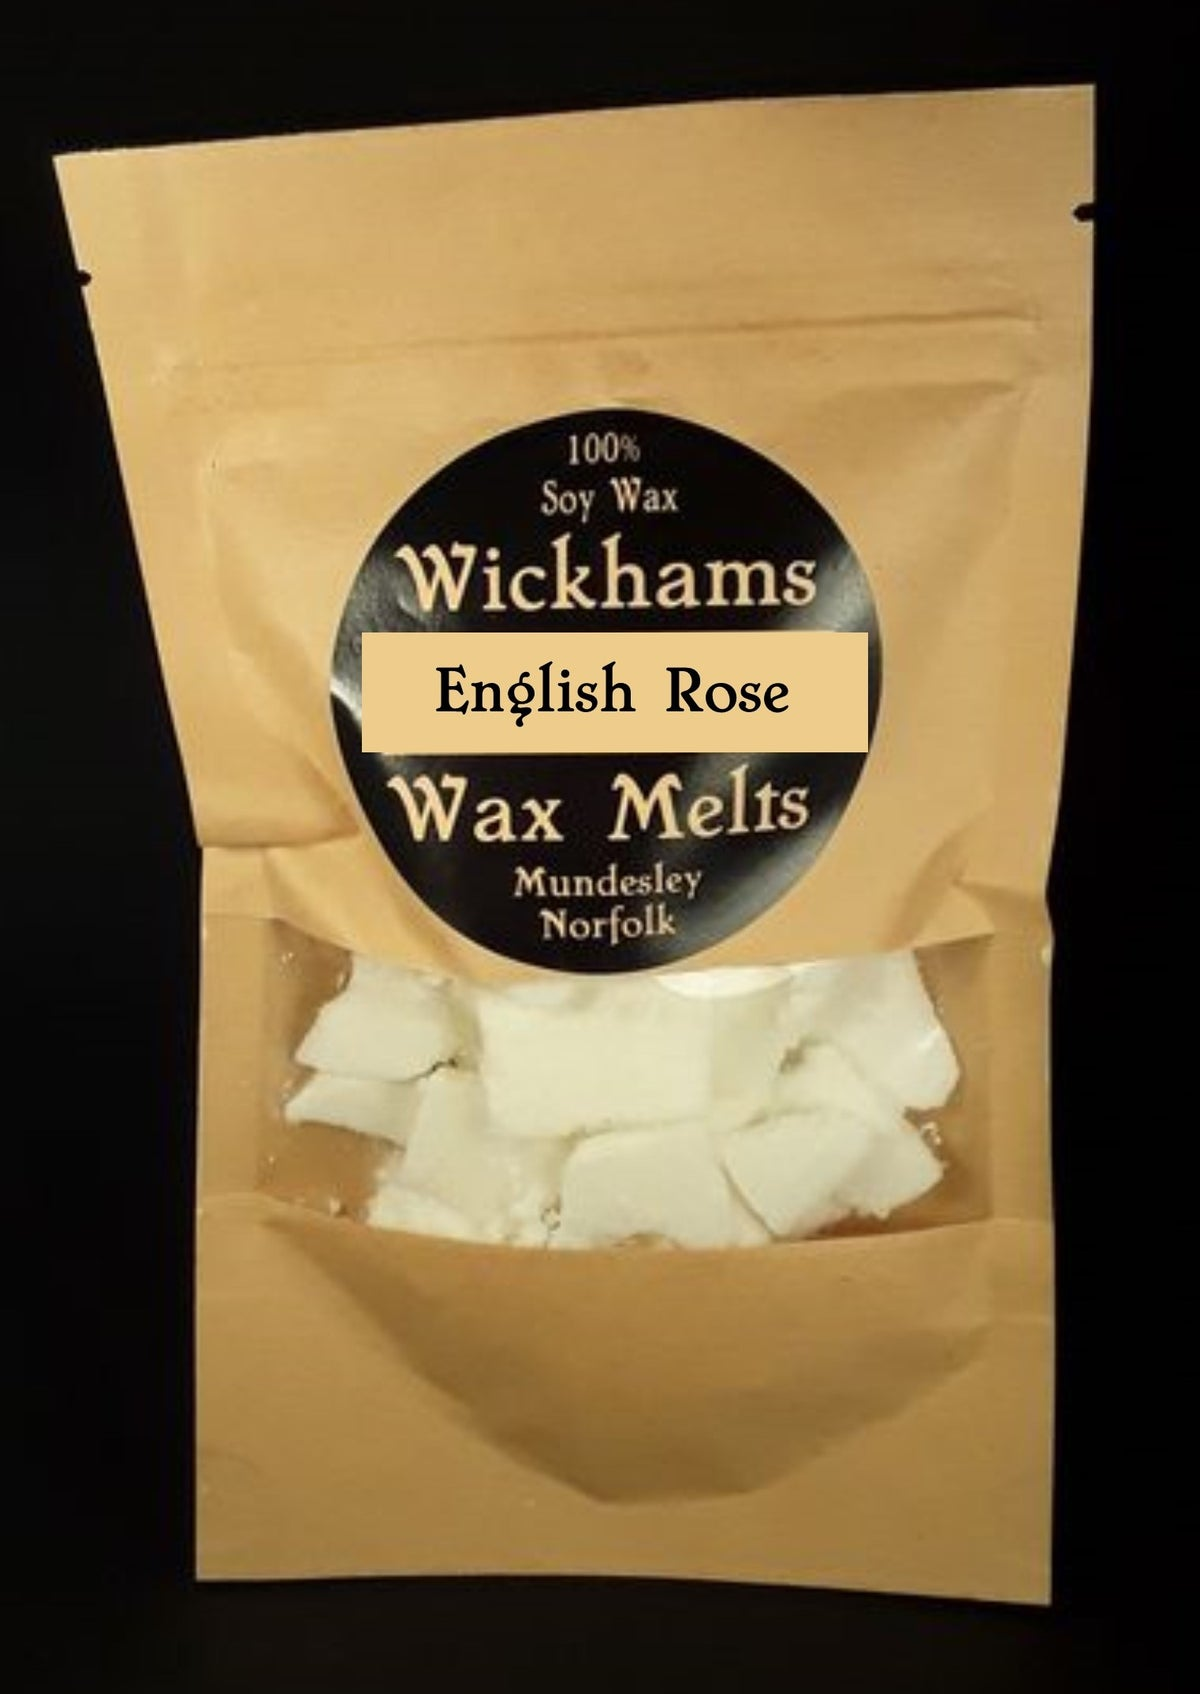 Image of English Rose Wax Melt Bag